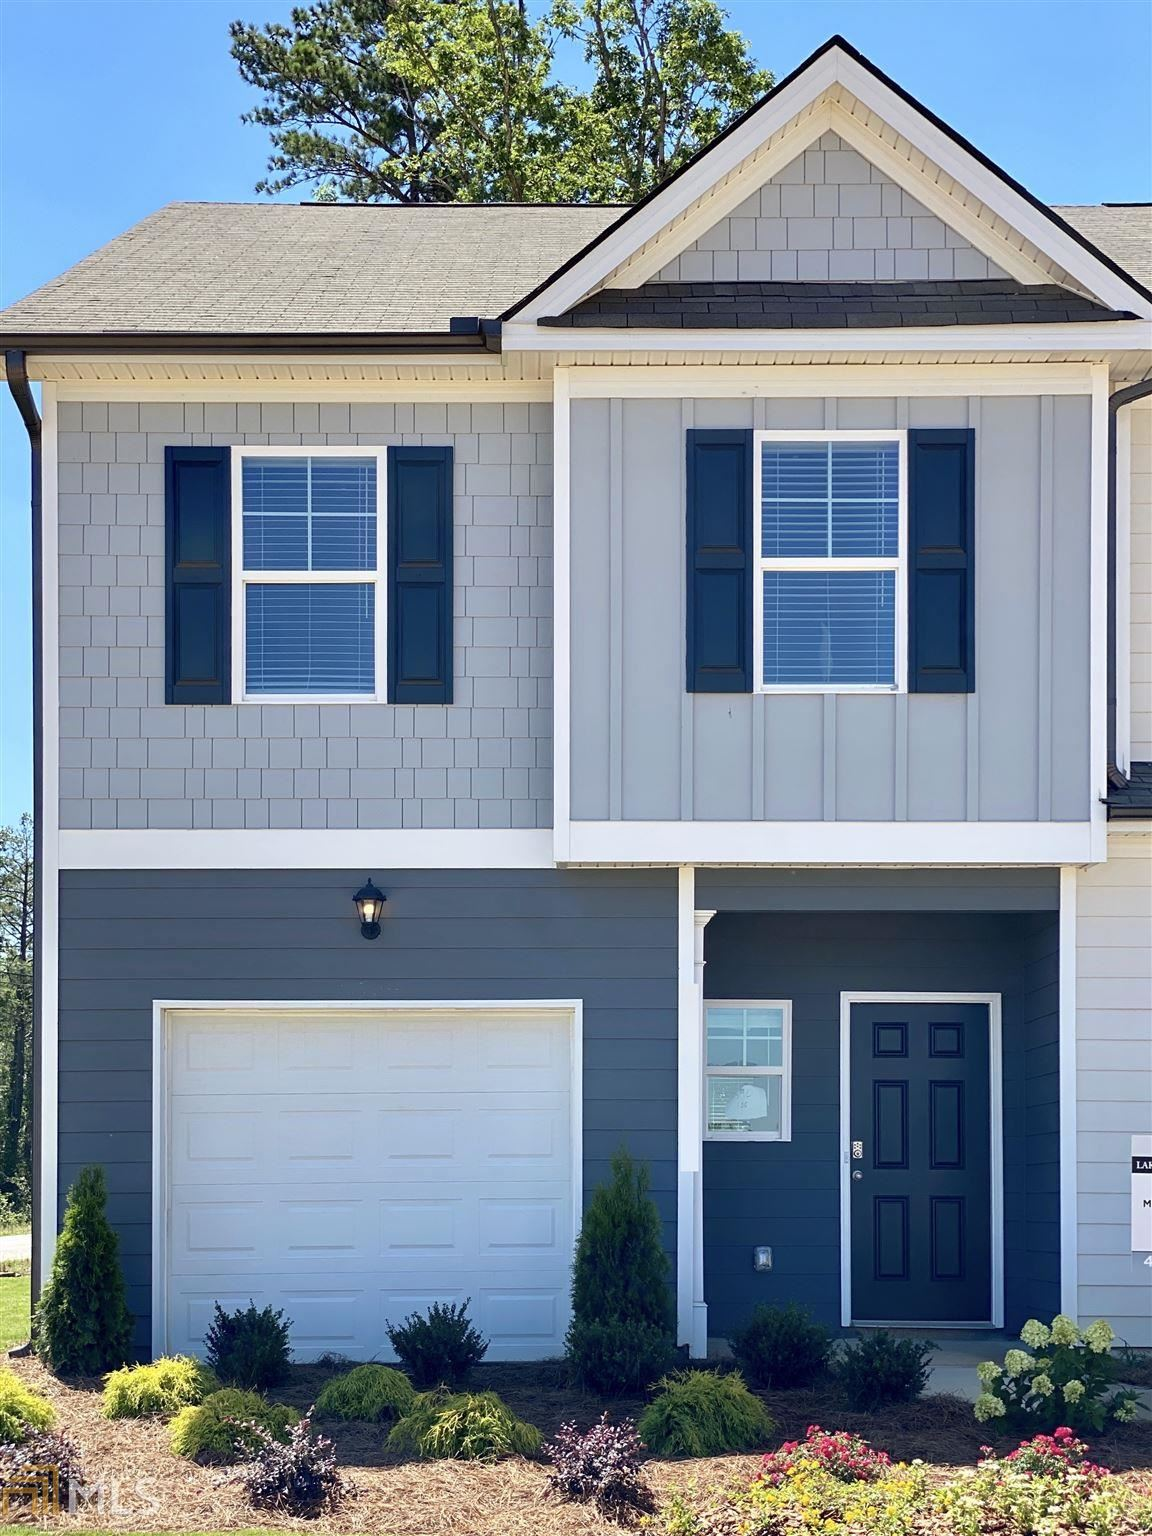 7129 Gladstone Cir, Lithonia, GA 30038 - MLS#: 8859115